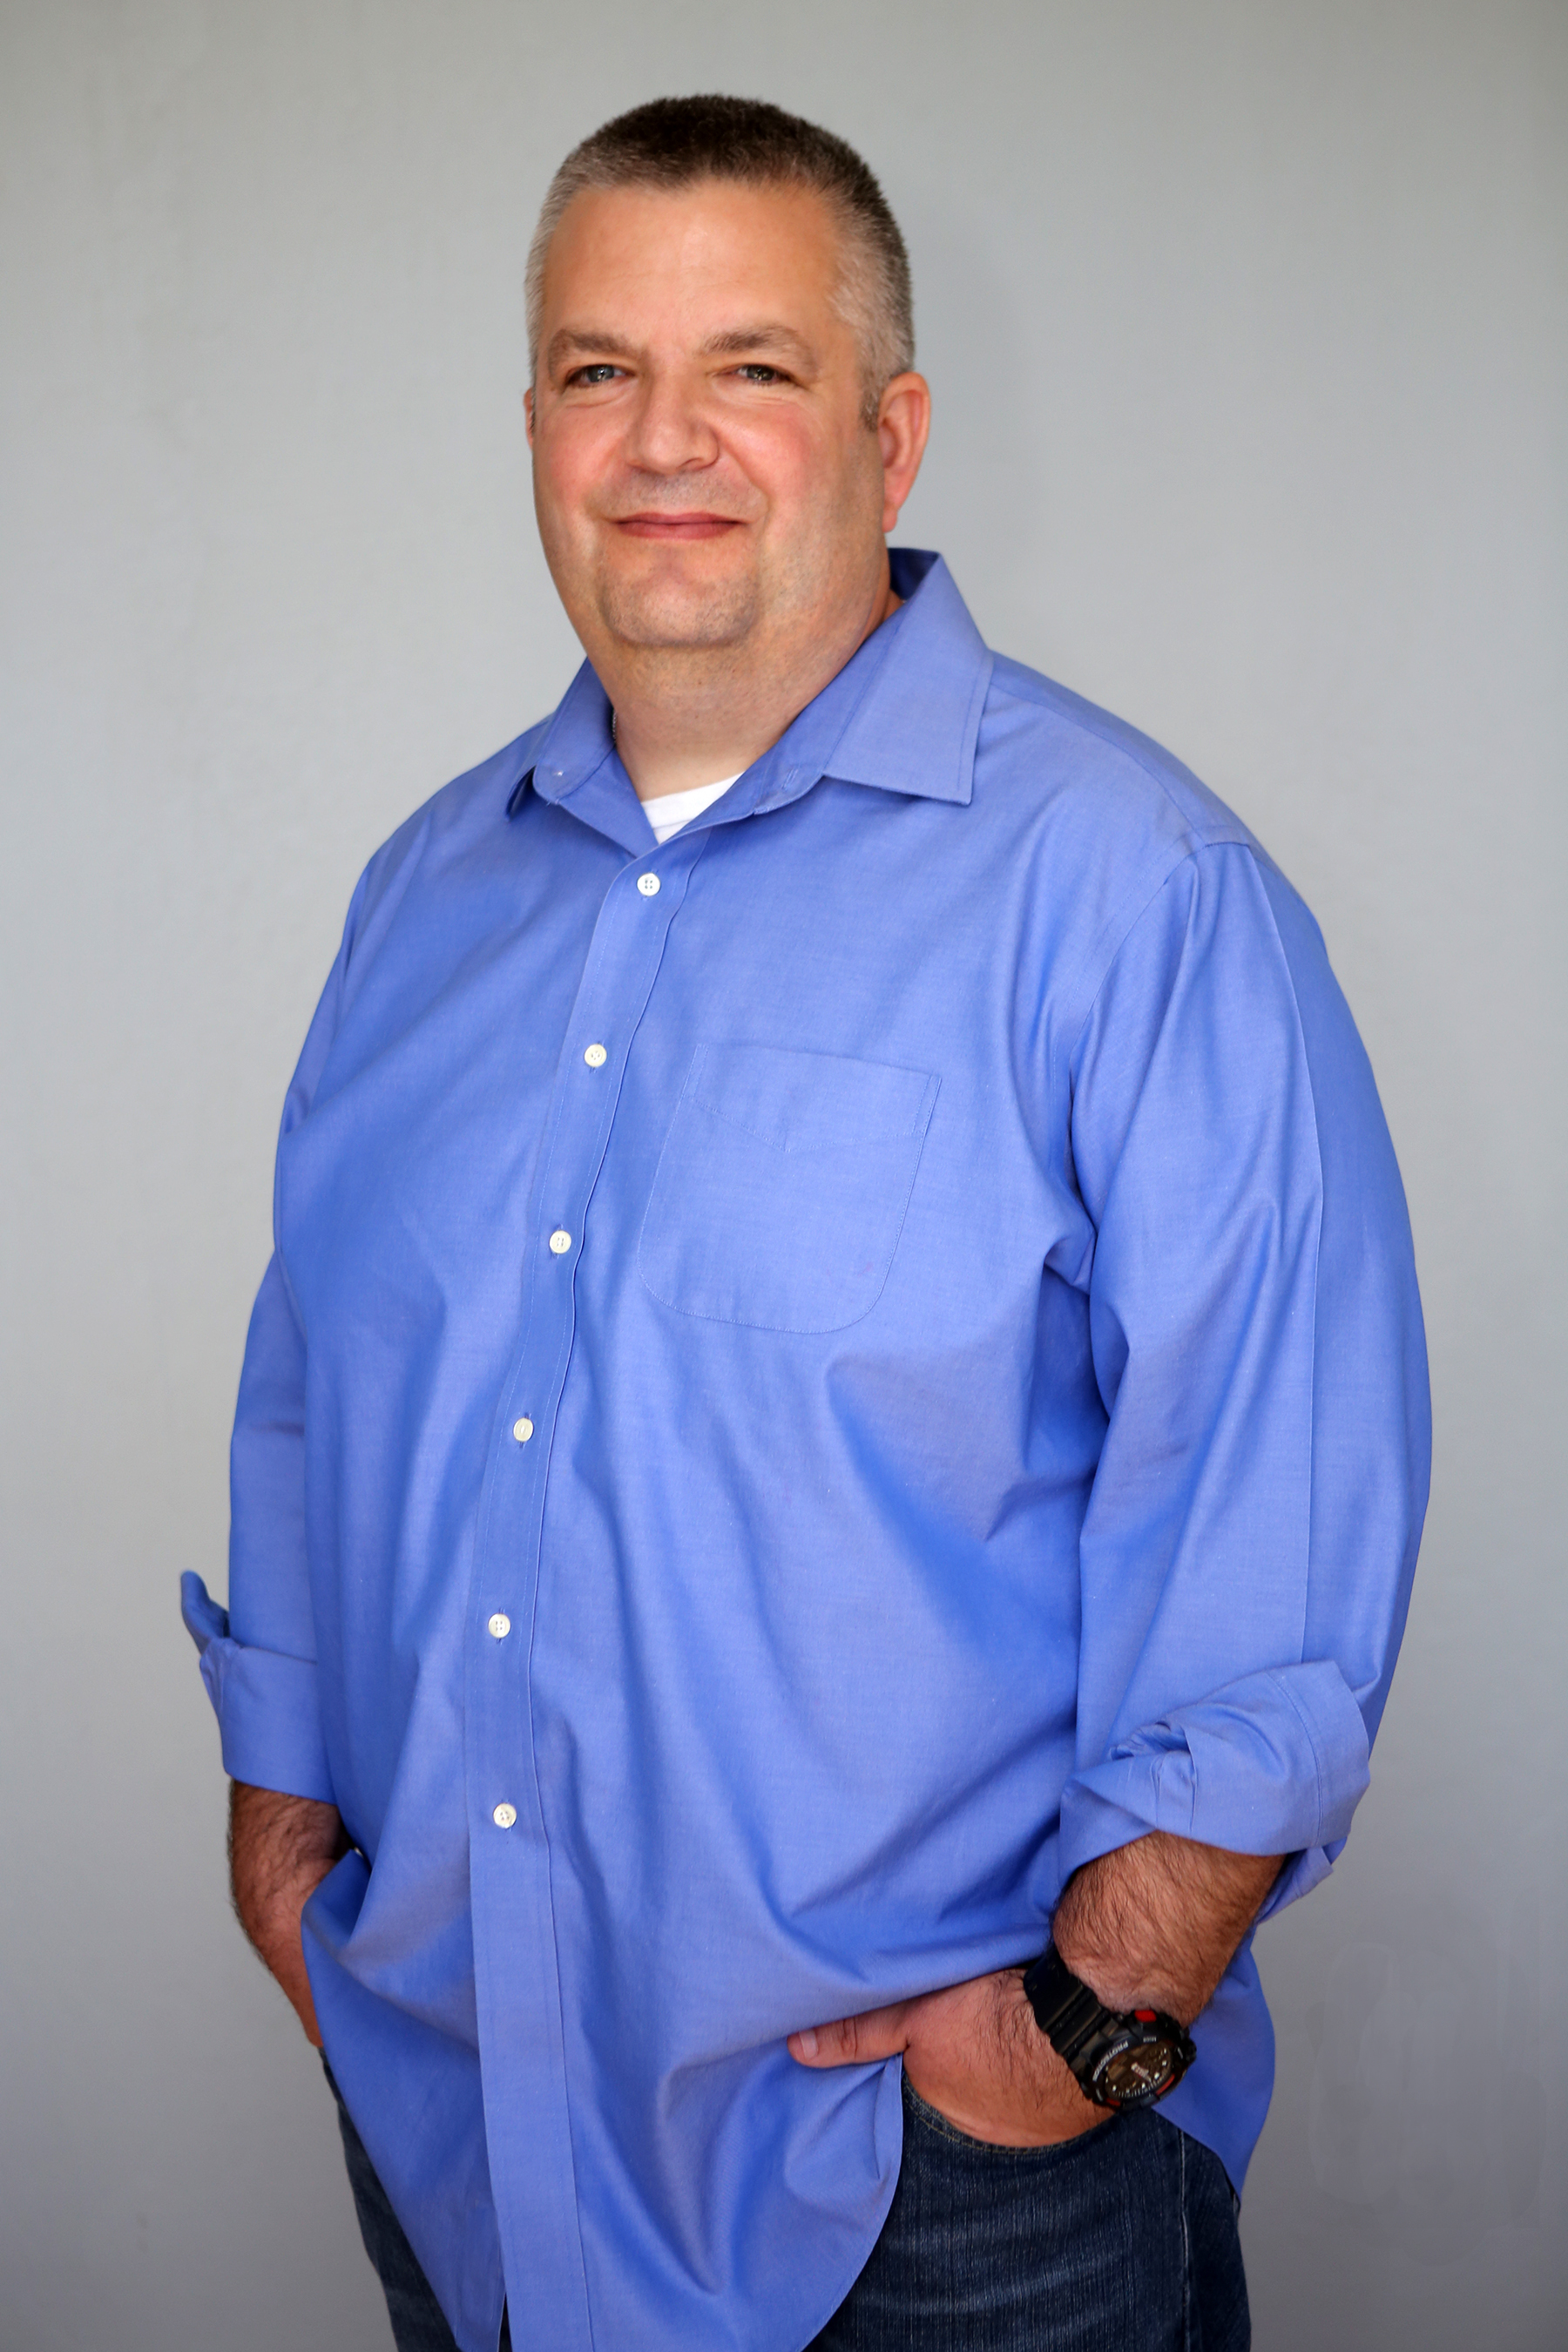 Bill Routt, Chief Operating Officer for MobiTV (Photo: Business Wire)